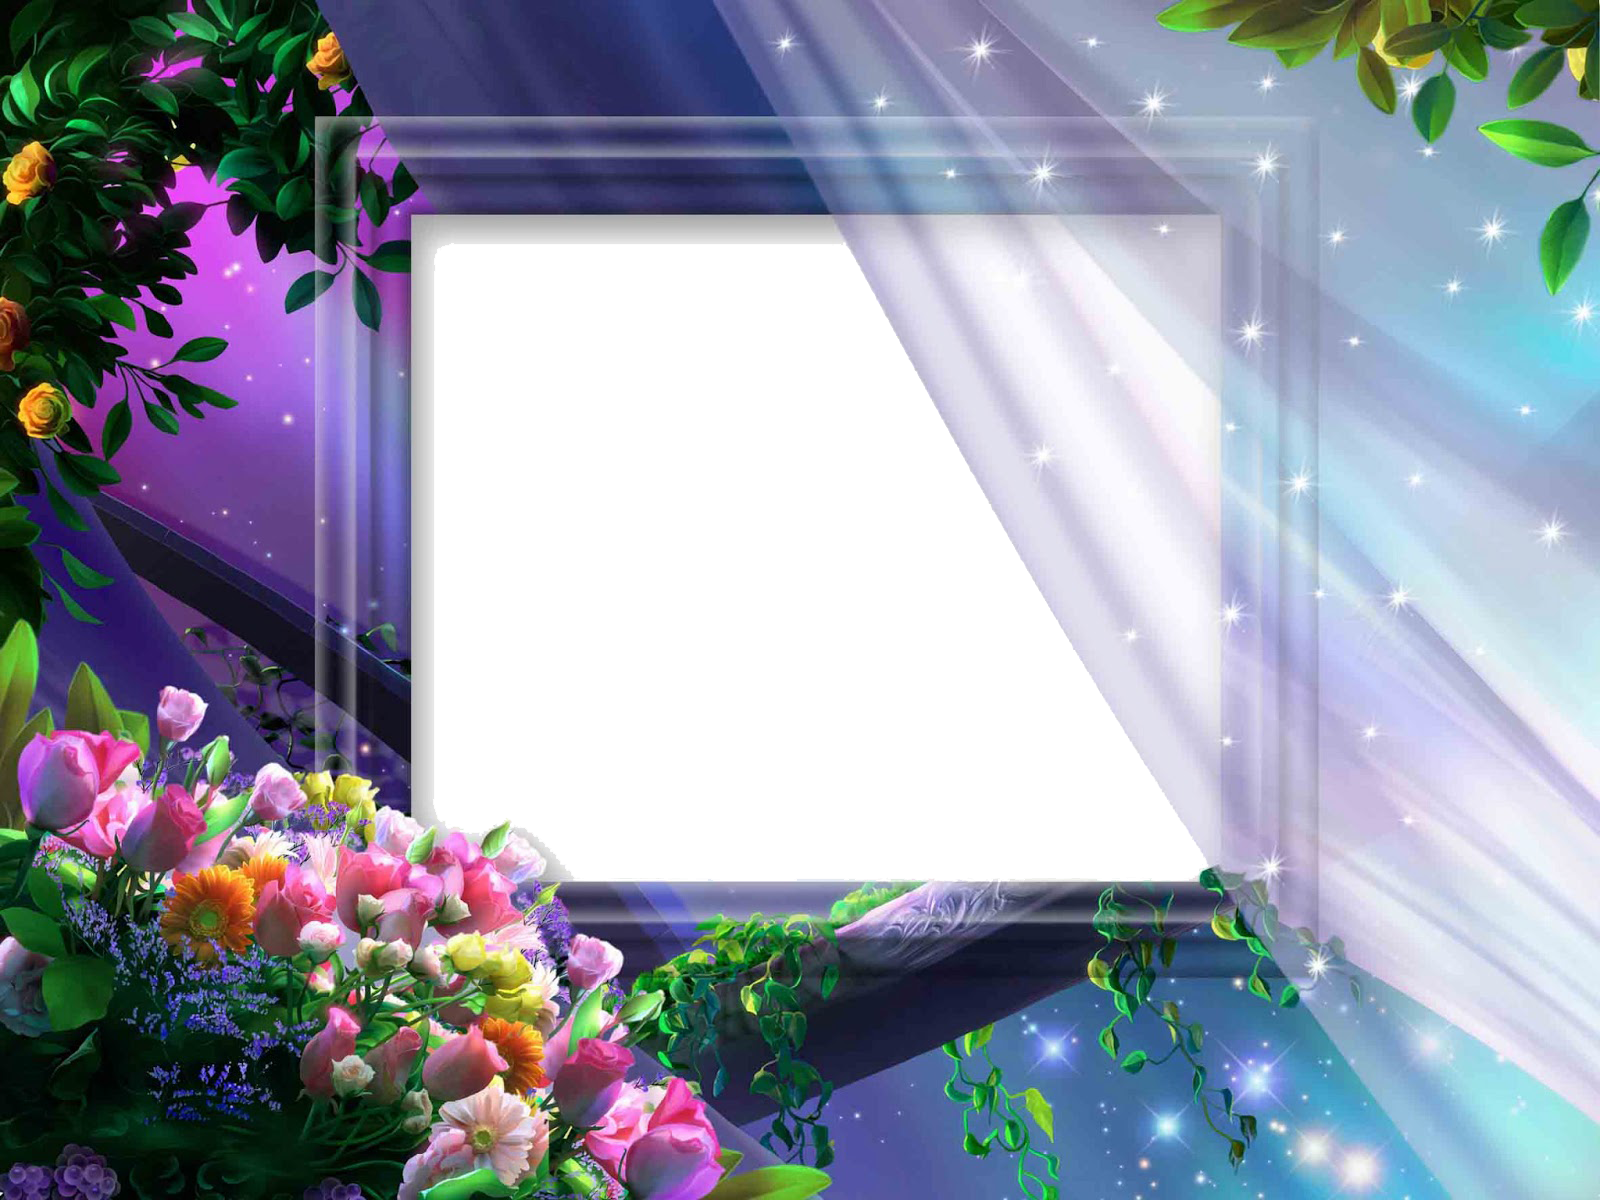 Wedding Frame PNG Transparent Images.